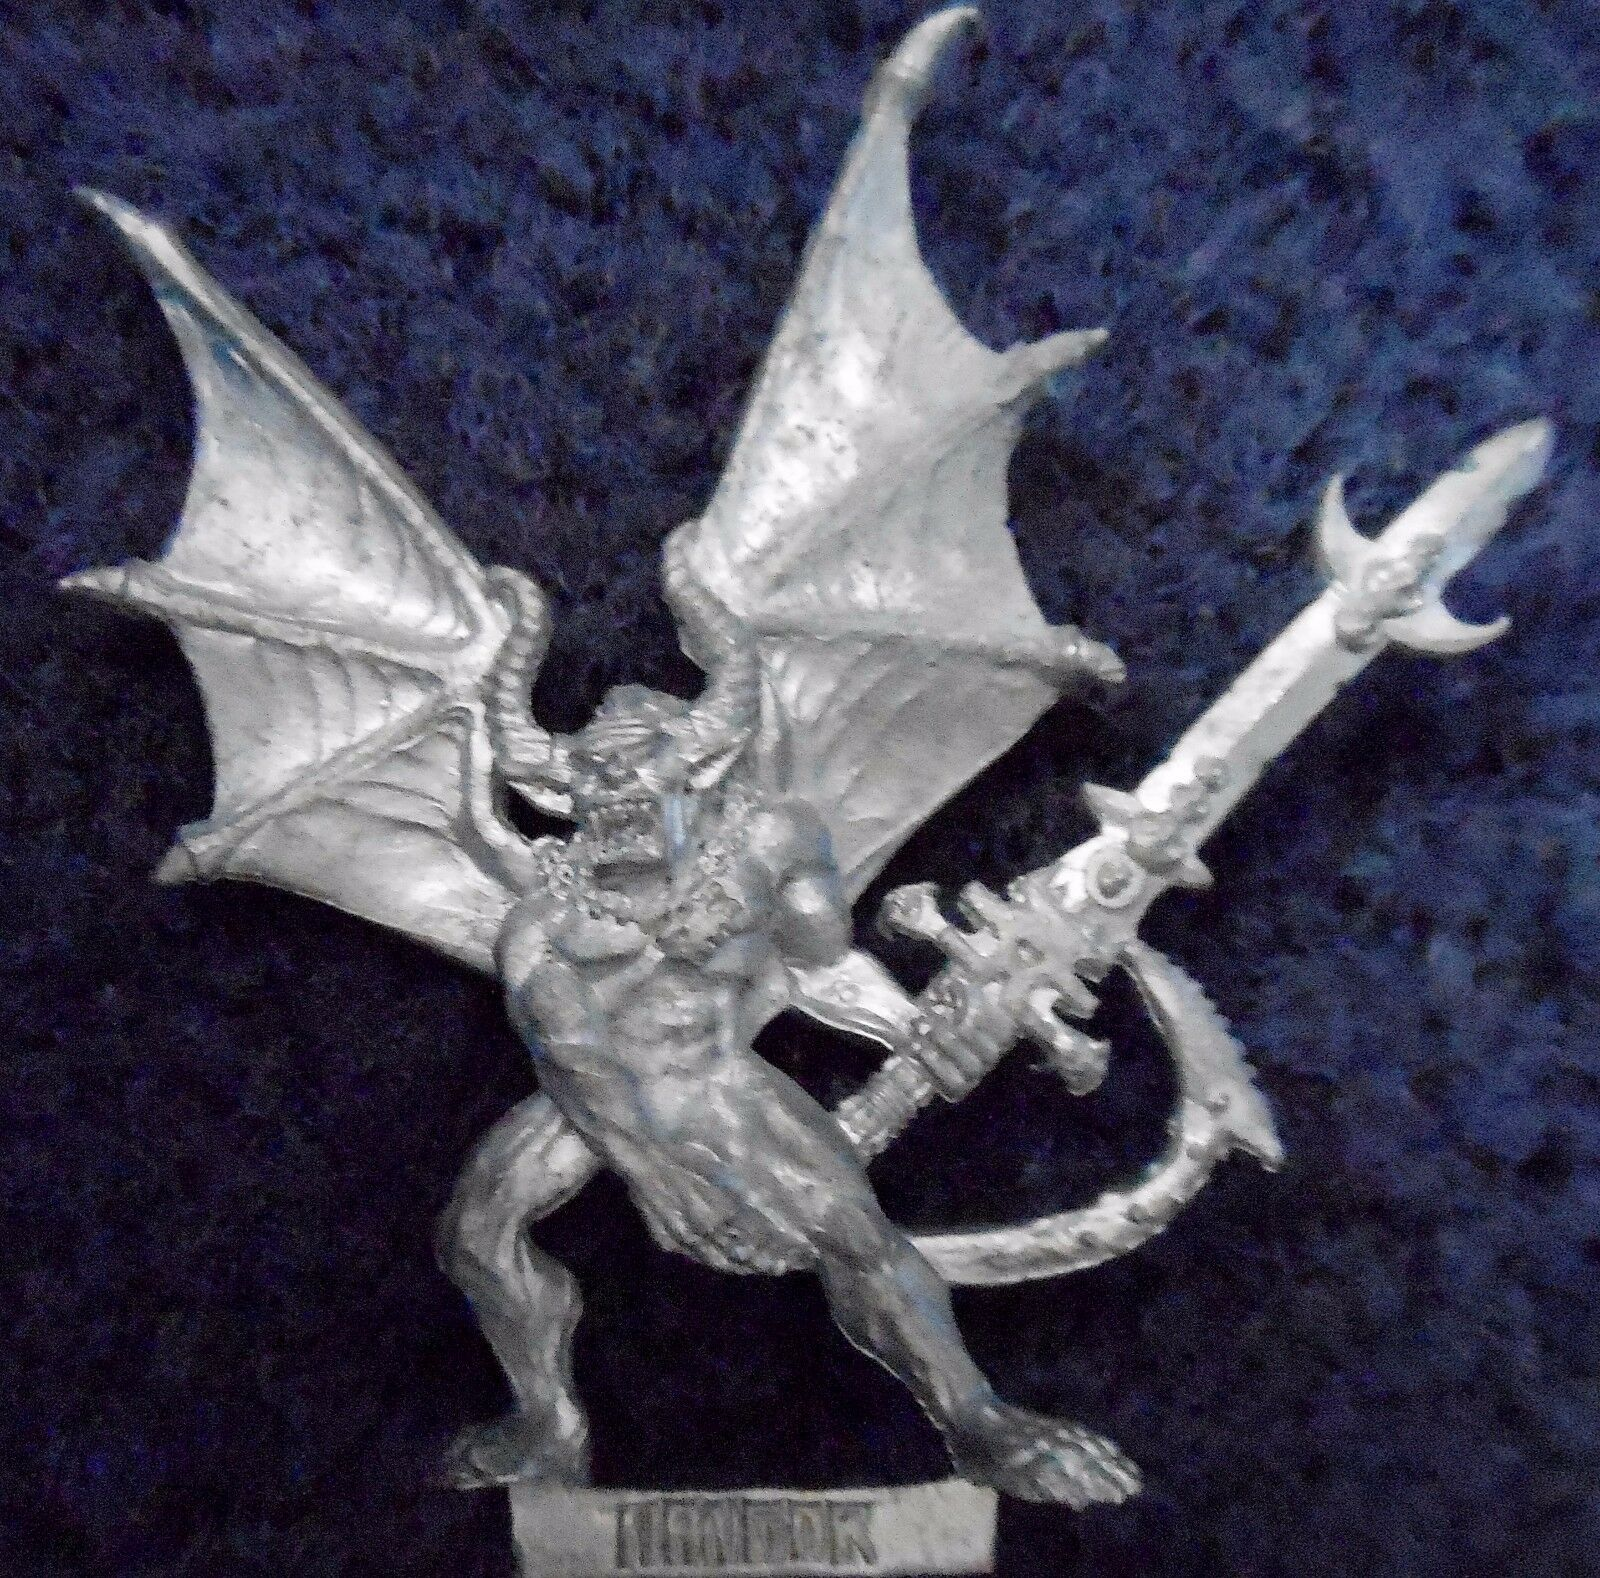 1992 EPIC Chaos Chaos Chaos Angron Démon primarch of Khorne Citadel warhammer 6 mm 40K Demon f4f396